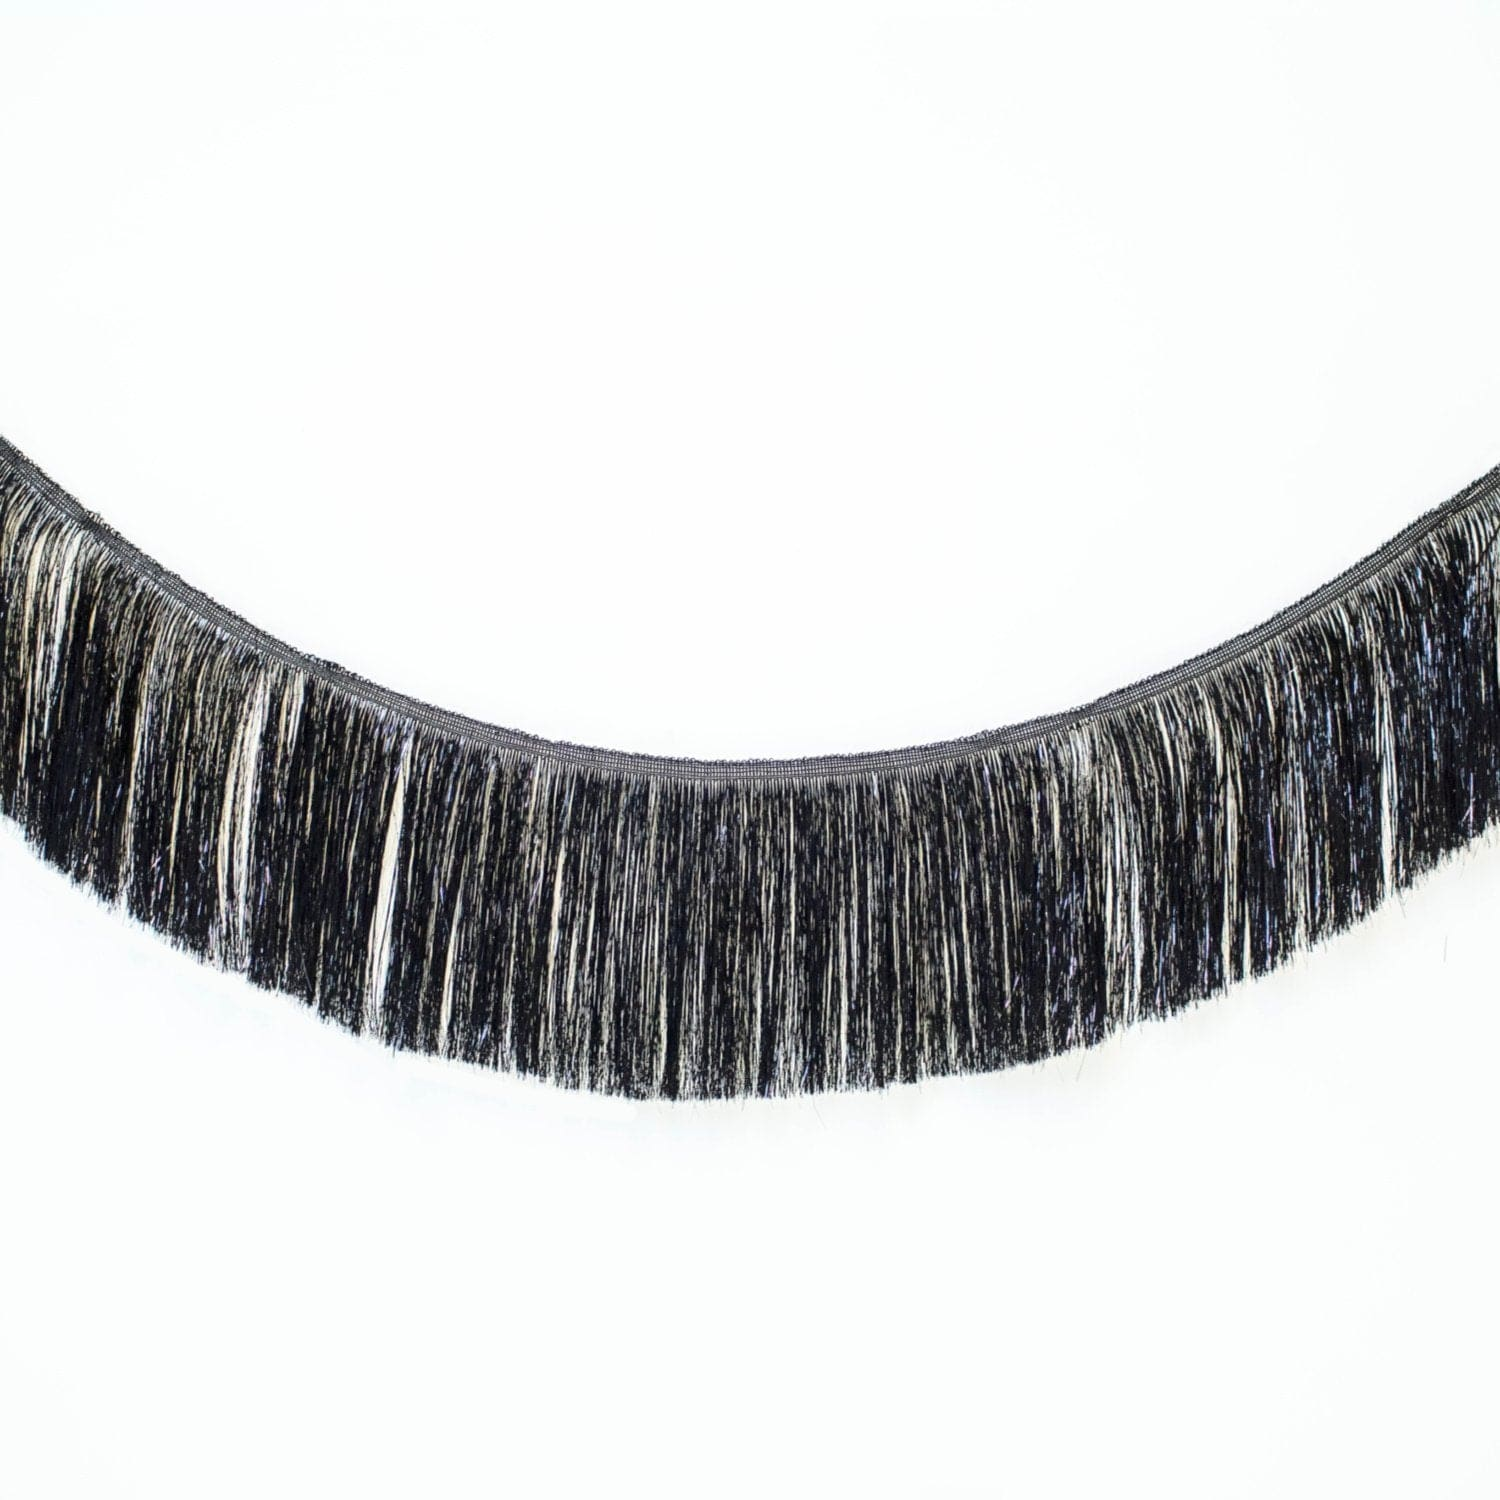 Tinsel Fringe Garland | Black Metallic Party Fringe UK